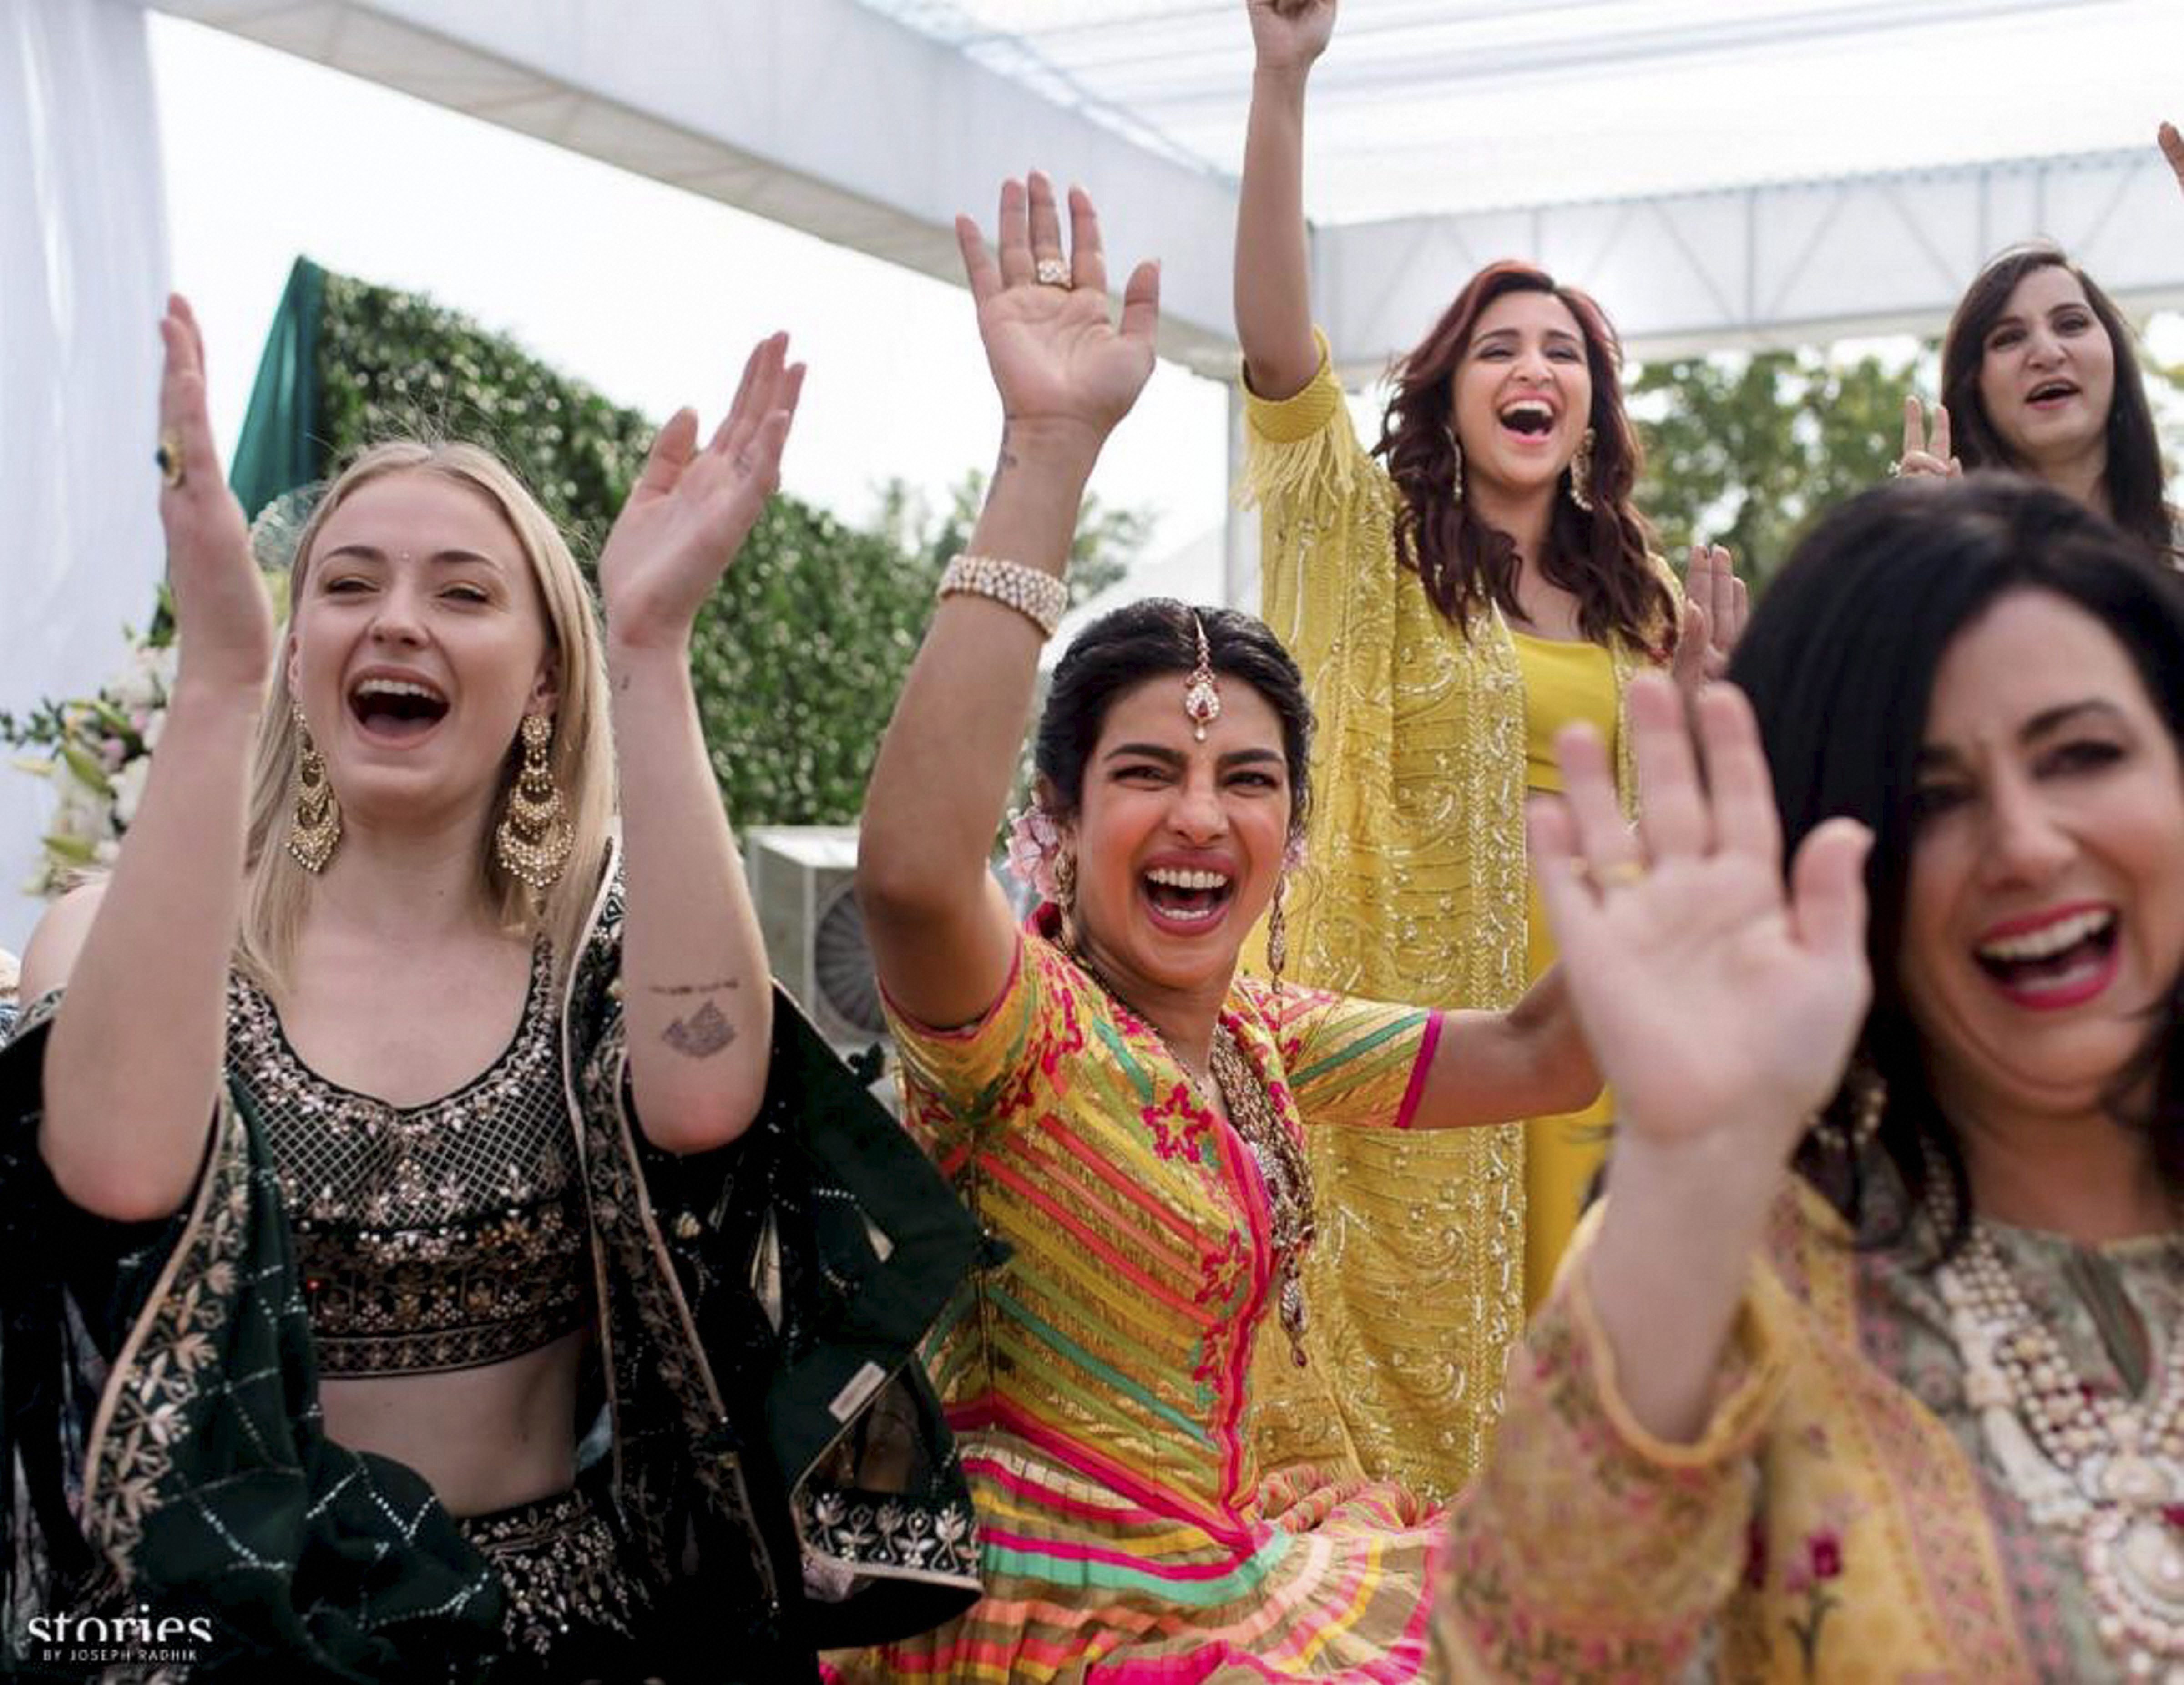 Bollywood actress Priyanka Chopra celebrates during mehendi ceremony, a day before her wedding, at Umaid Bhawan in Jodhpur - PTI